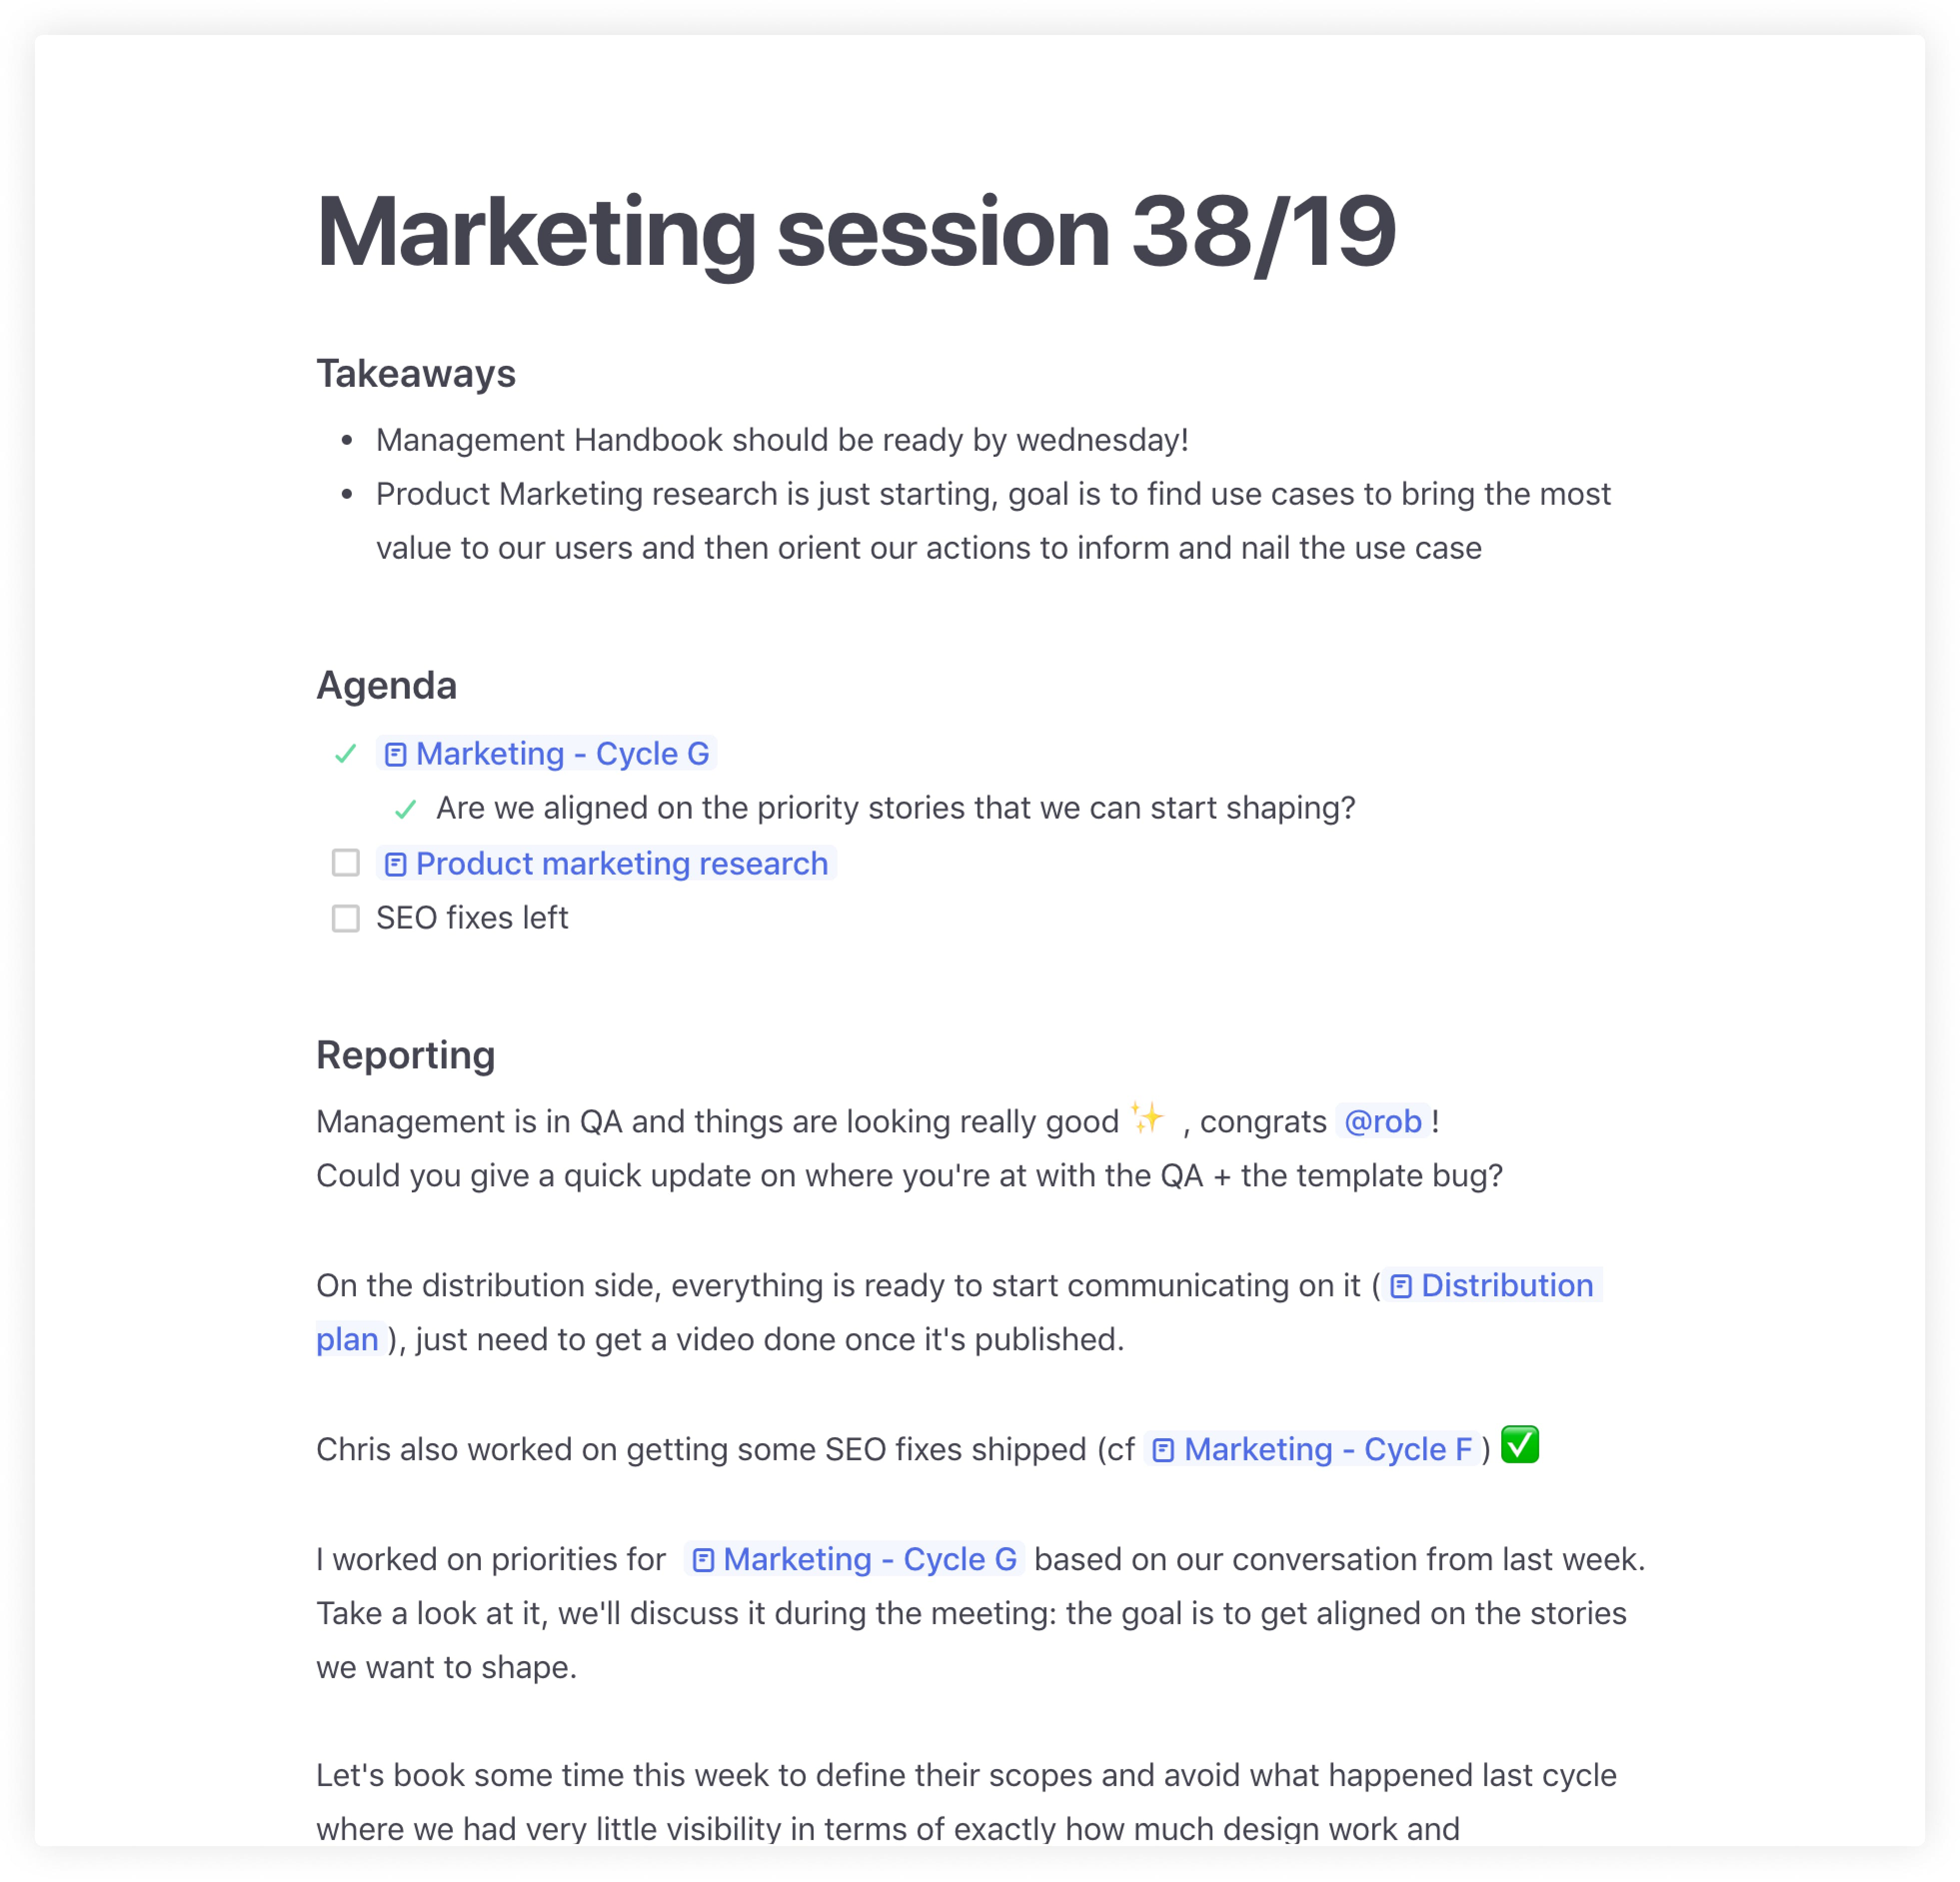 Meeting Summary Template from images.prismic.io